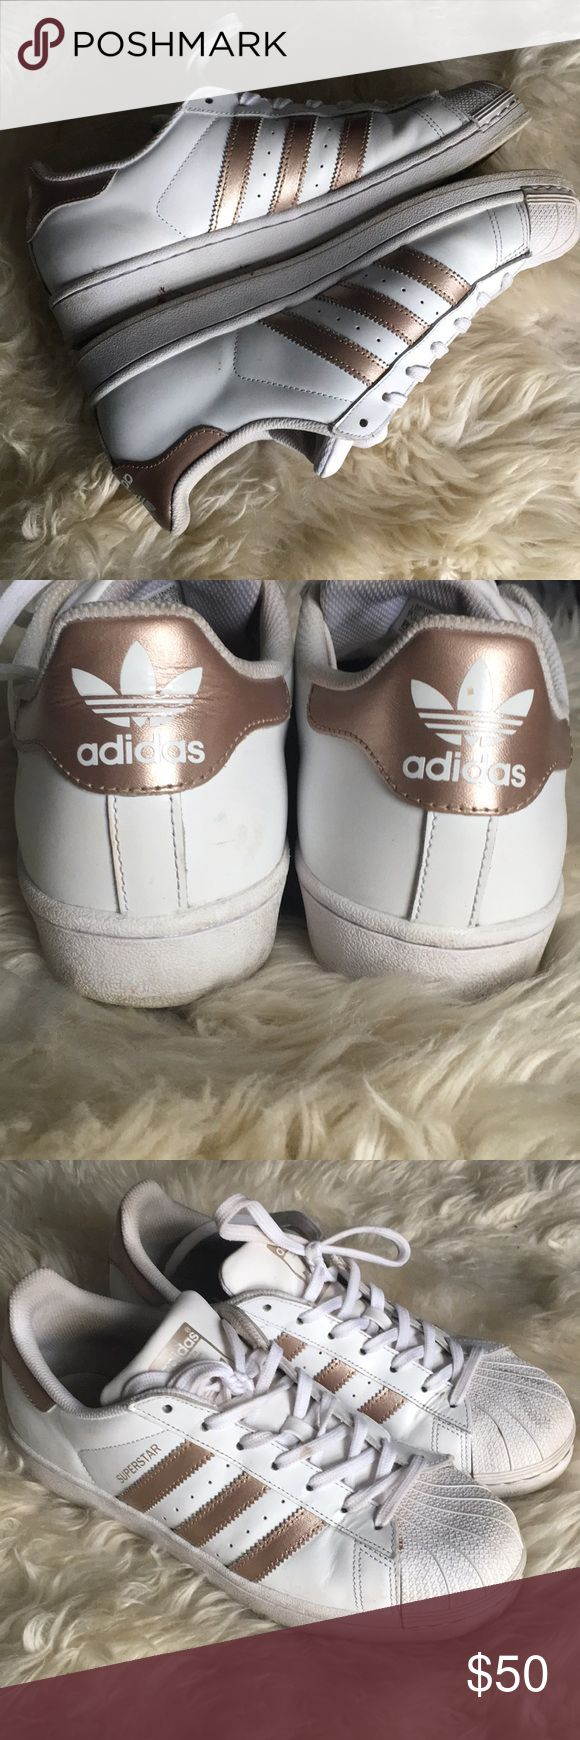 Stan smith copper adidas superstars Stan Smith adidas super stars adidas Shoes Sneakers